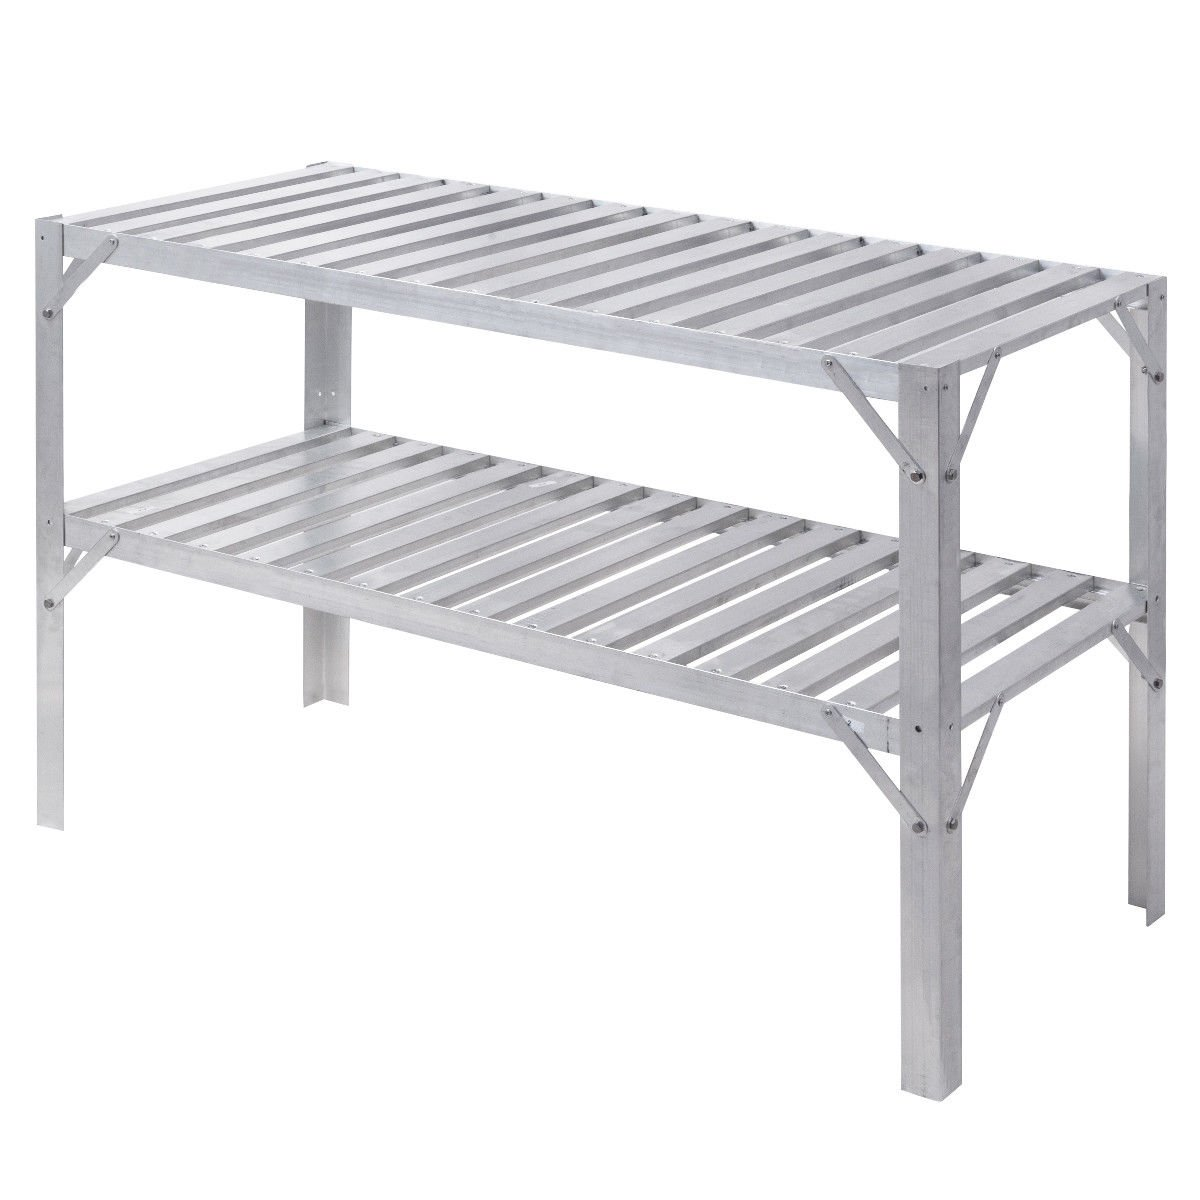 Giantex Aluminum Workbench Oranizer Greenhouse Prepare Work Potting Table Storage Garage Shelves, Silver by Giantex (Image #6)